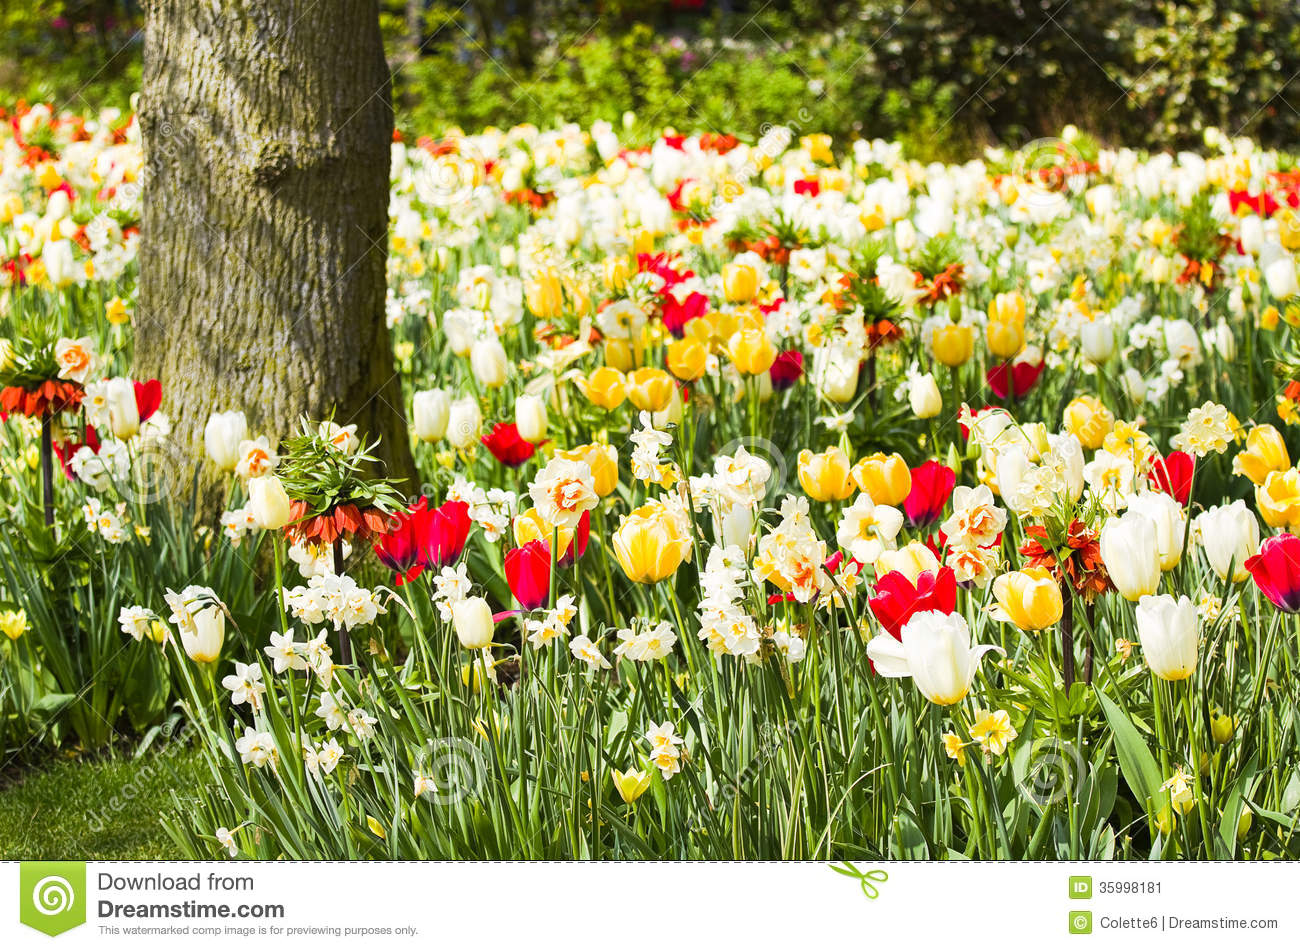 Tulips, daffodils and Imperial Crowns blooming under a tree in spring ...